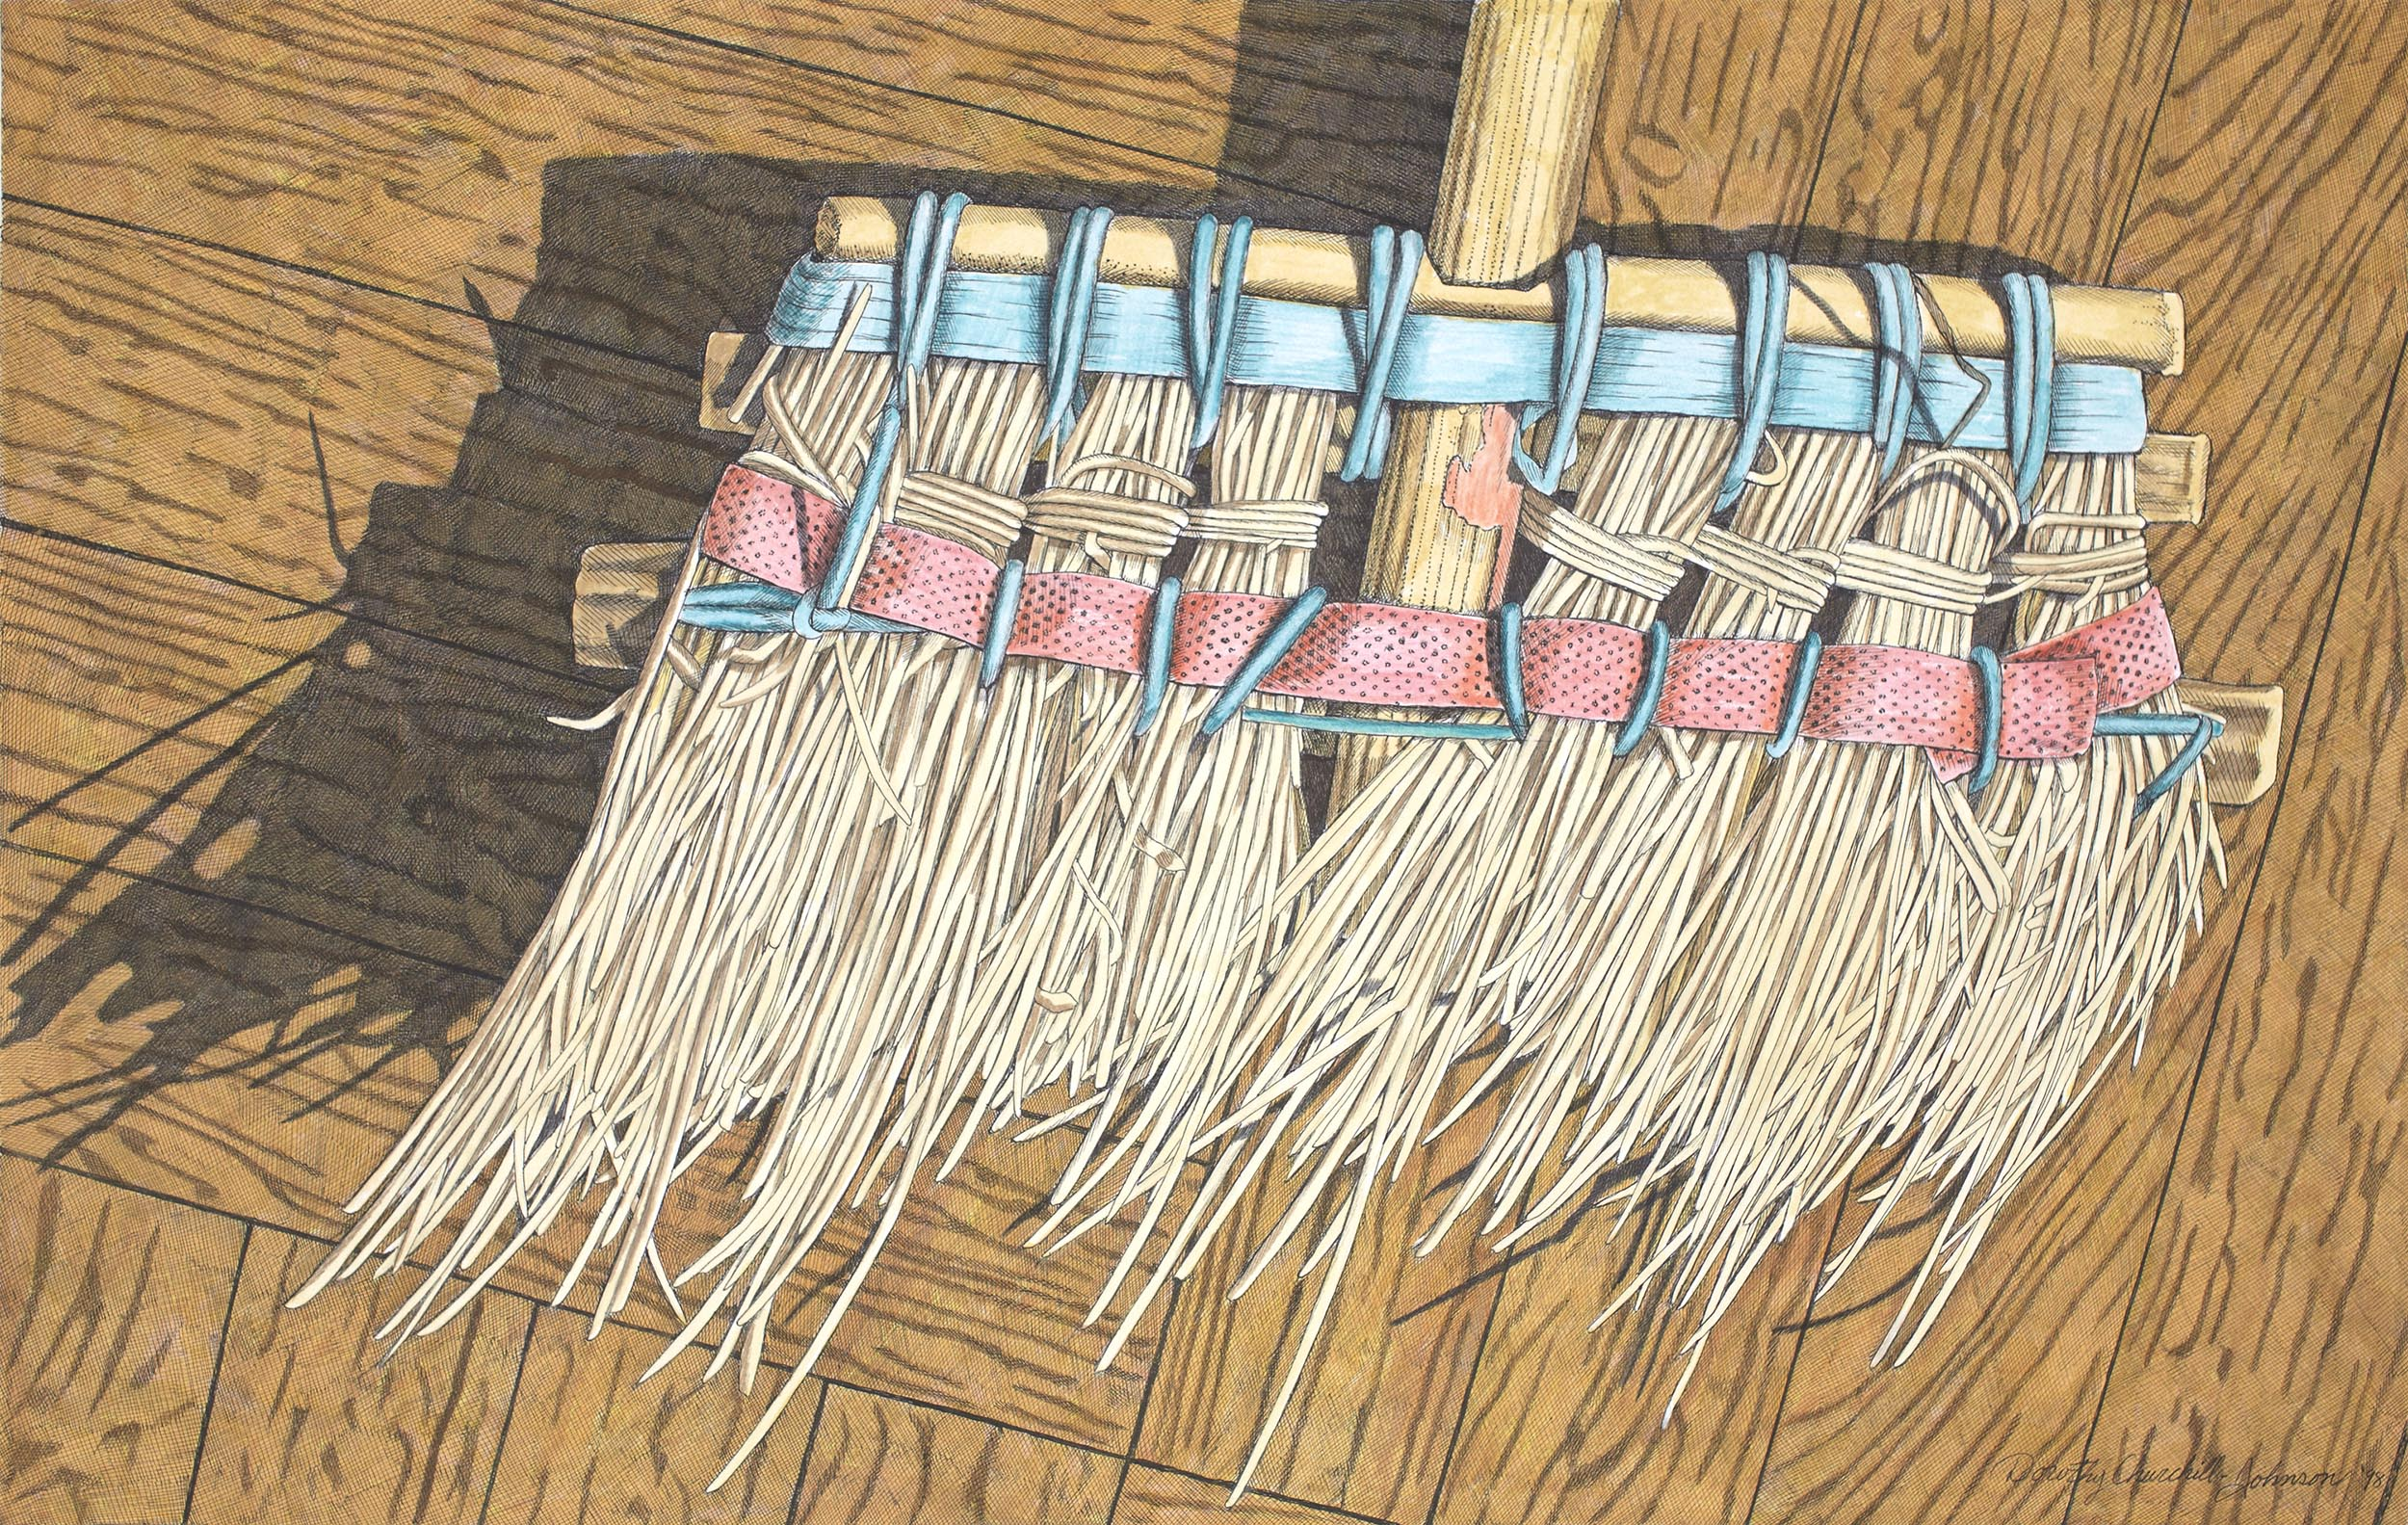 Chinese Broom, 16 x 26 inches